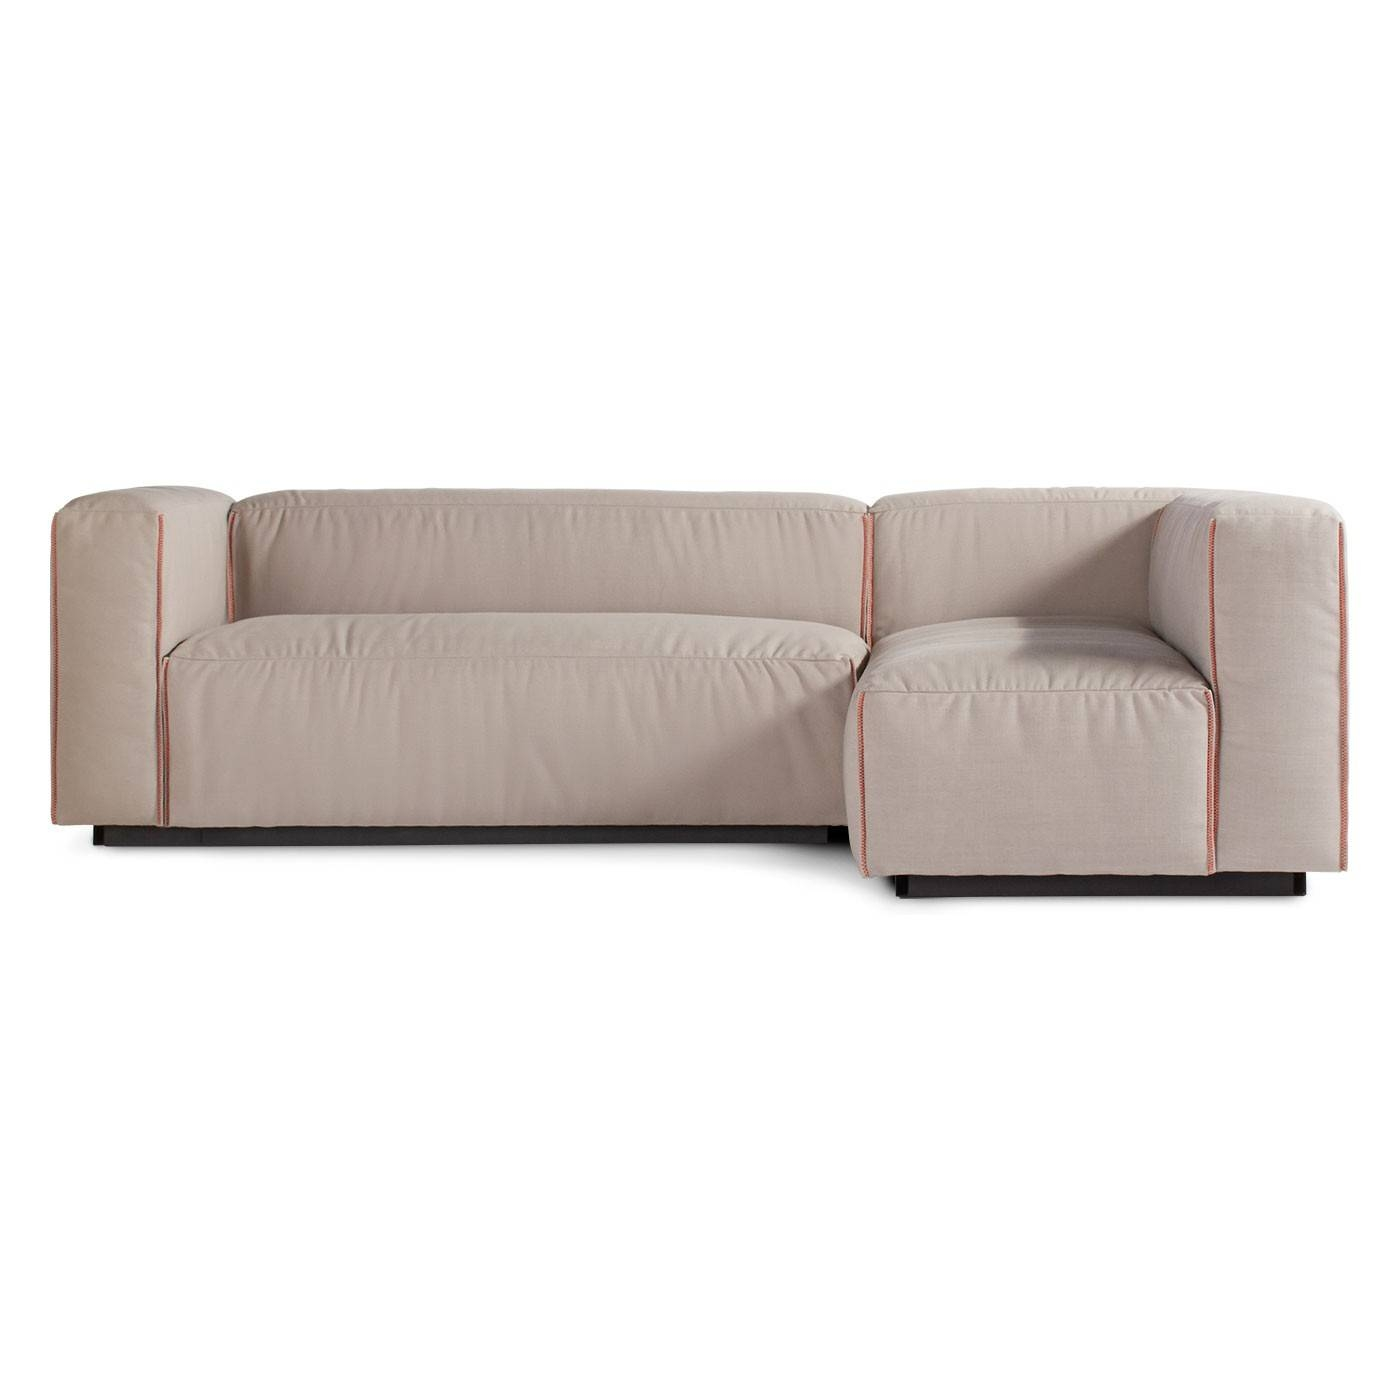 ▻ Sofa : 8 Lovely Small Modern Sectional Sofa Lovely Small with Modern Sectional Sofas for Small Spaces (Image 25 of 25)